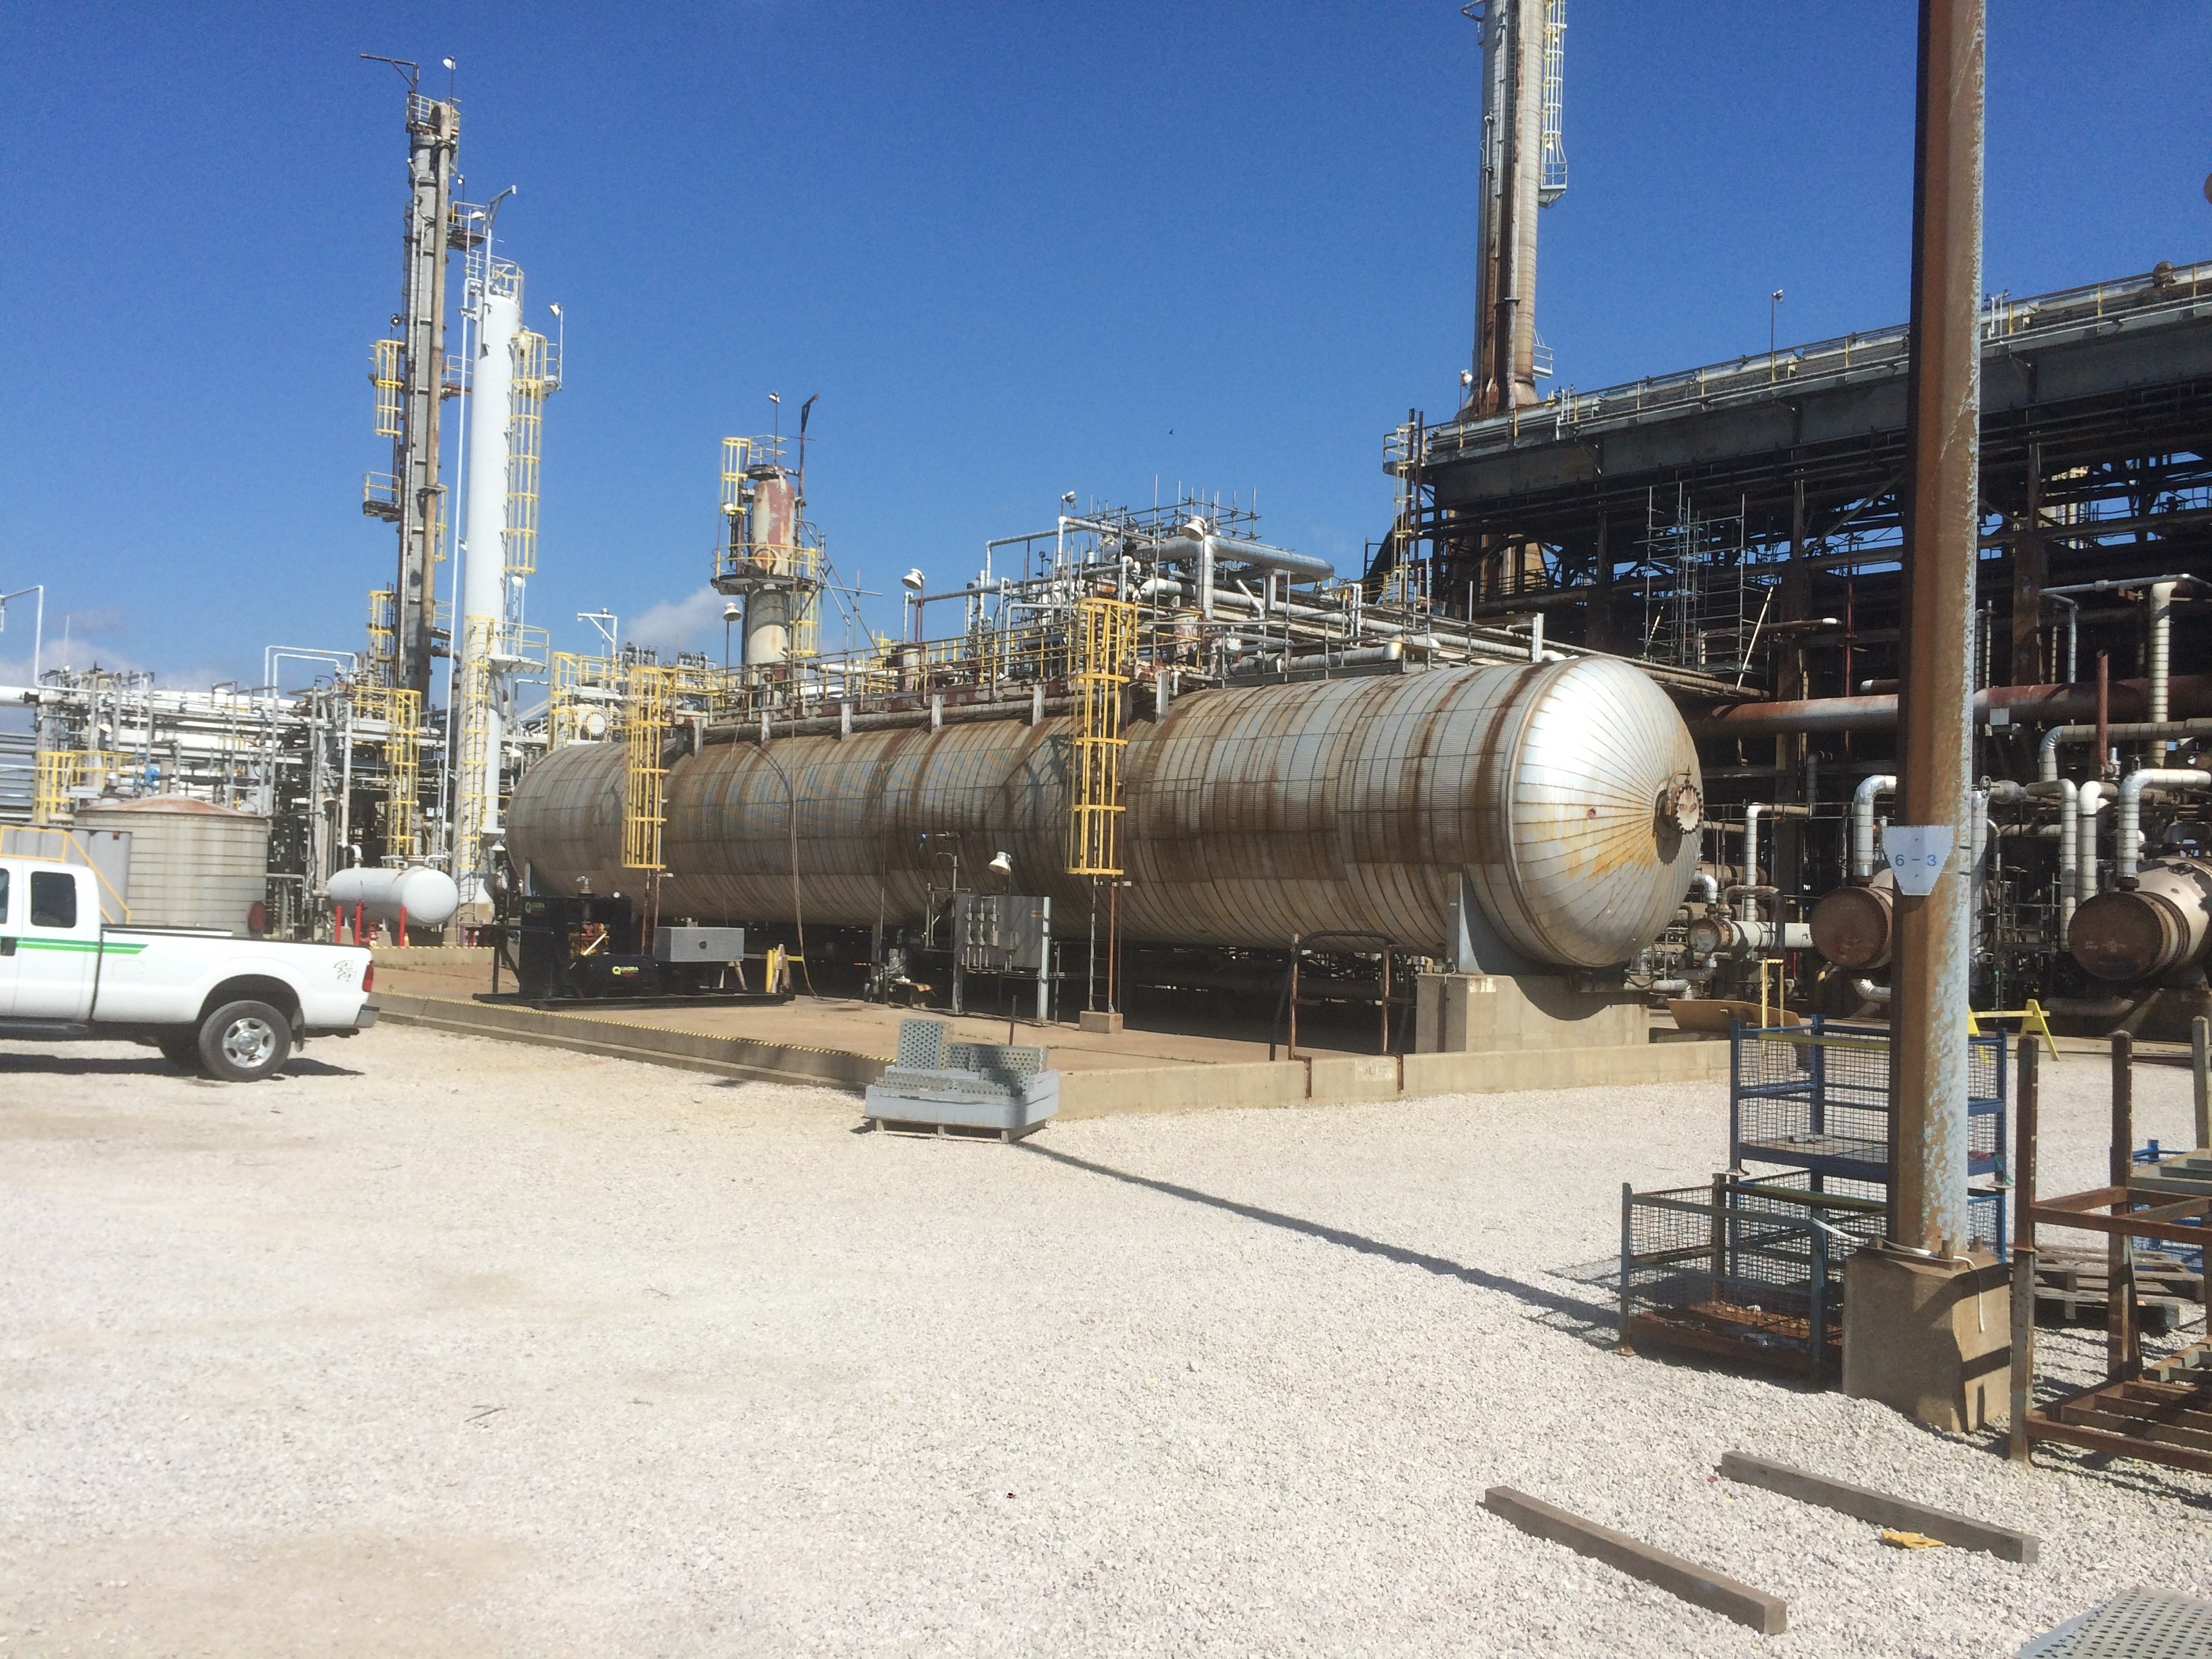 crude distillation unit Challenge of crude distillation unit optimisation the efficiency of a refinery to  produce petroleum distillates is directly linked to: • the crude oil that is delivered  to.